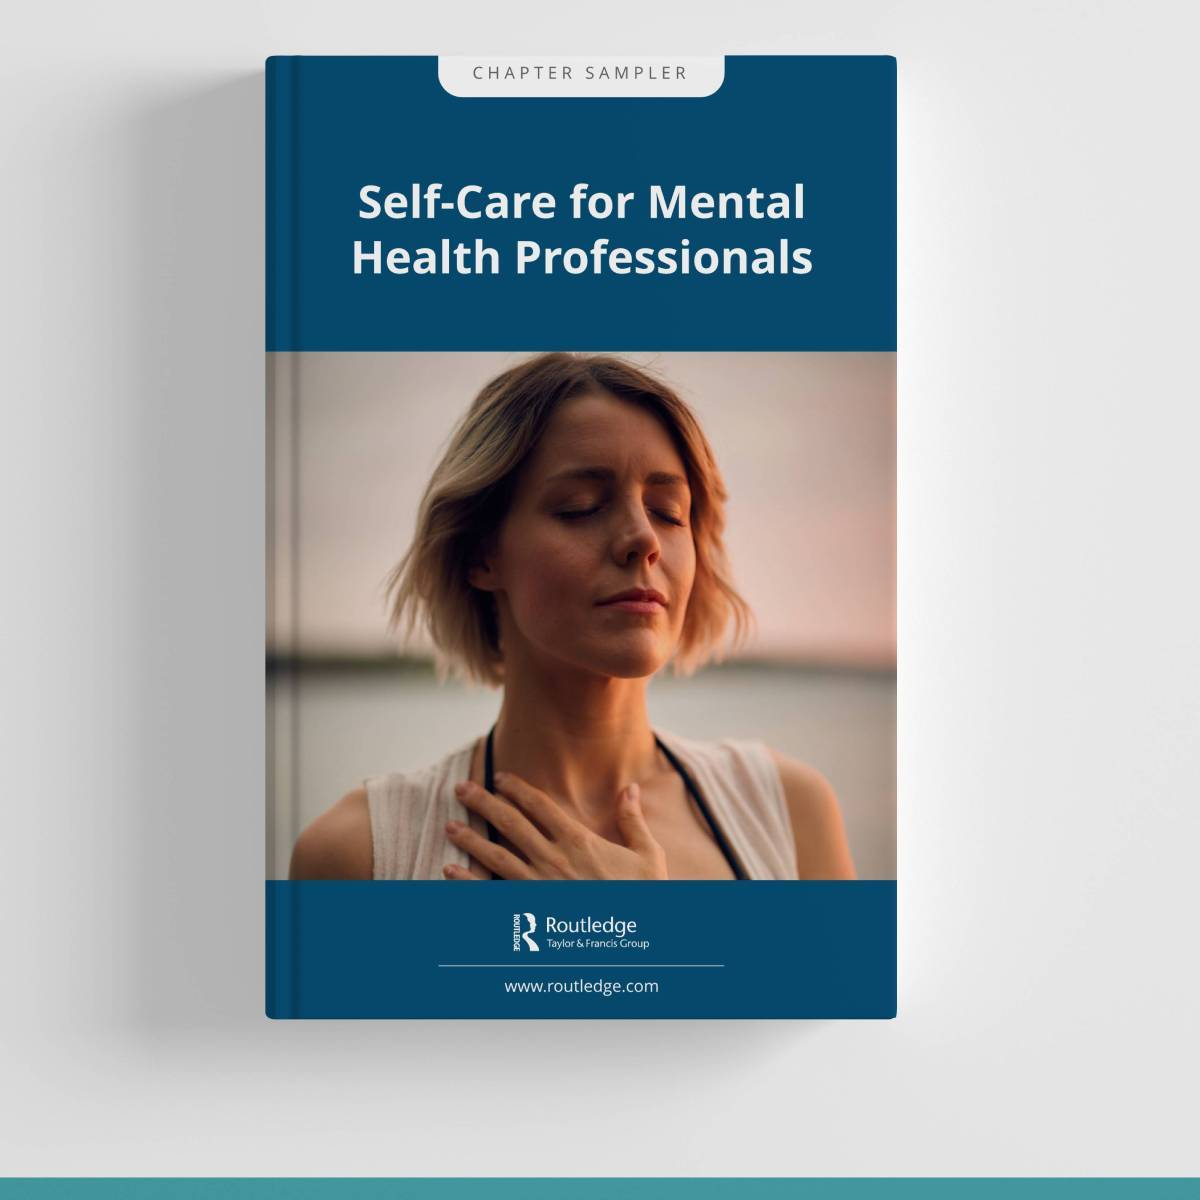 Self-Care for Mental Health Professionals